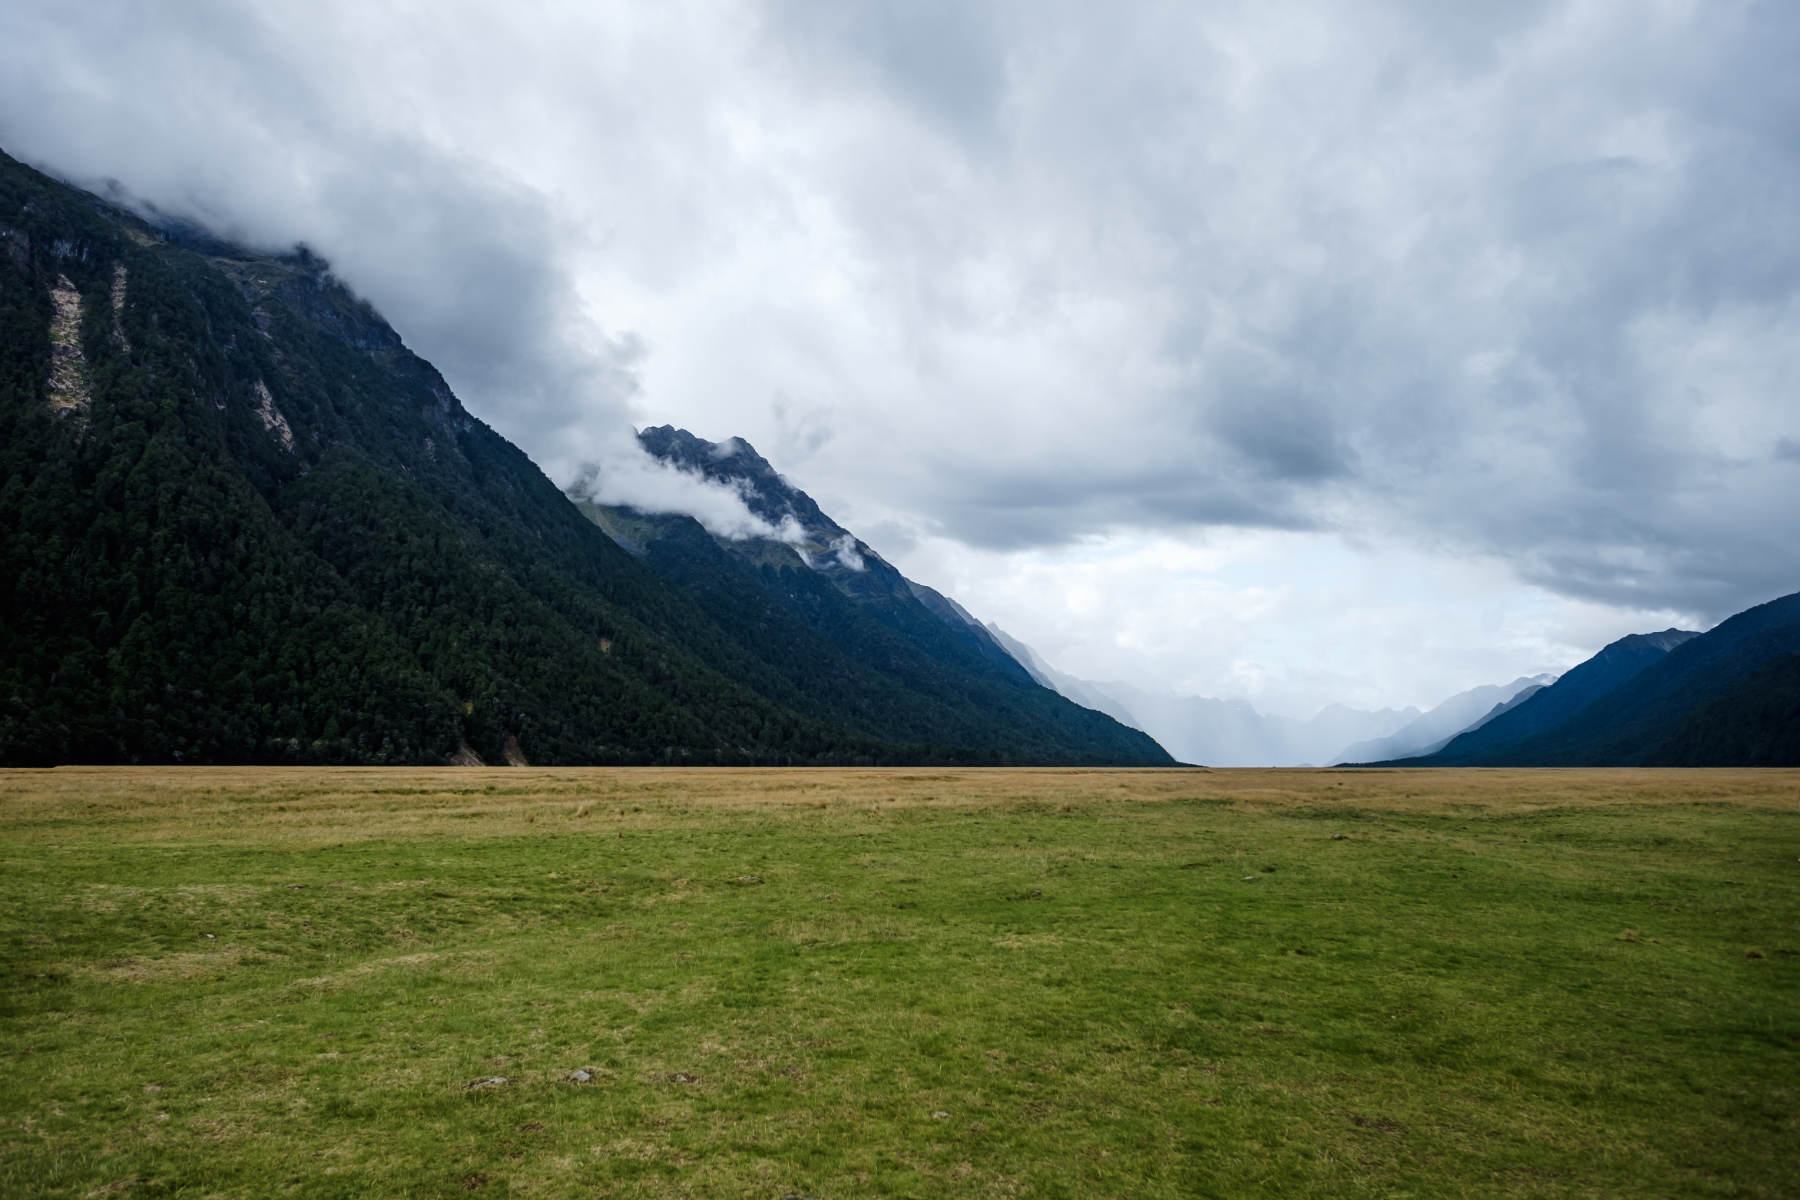 Vast field with mountains Milford Sound New Zealand